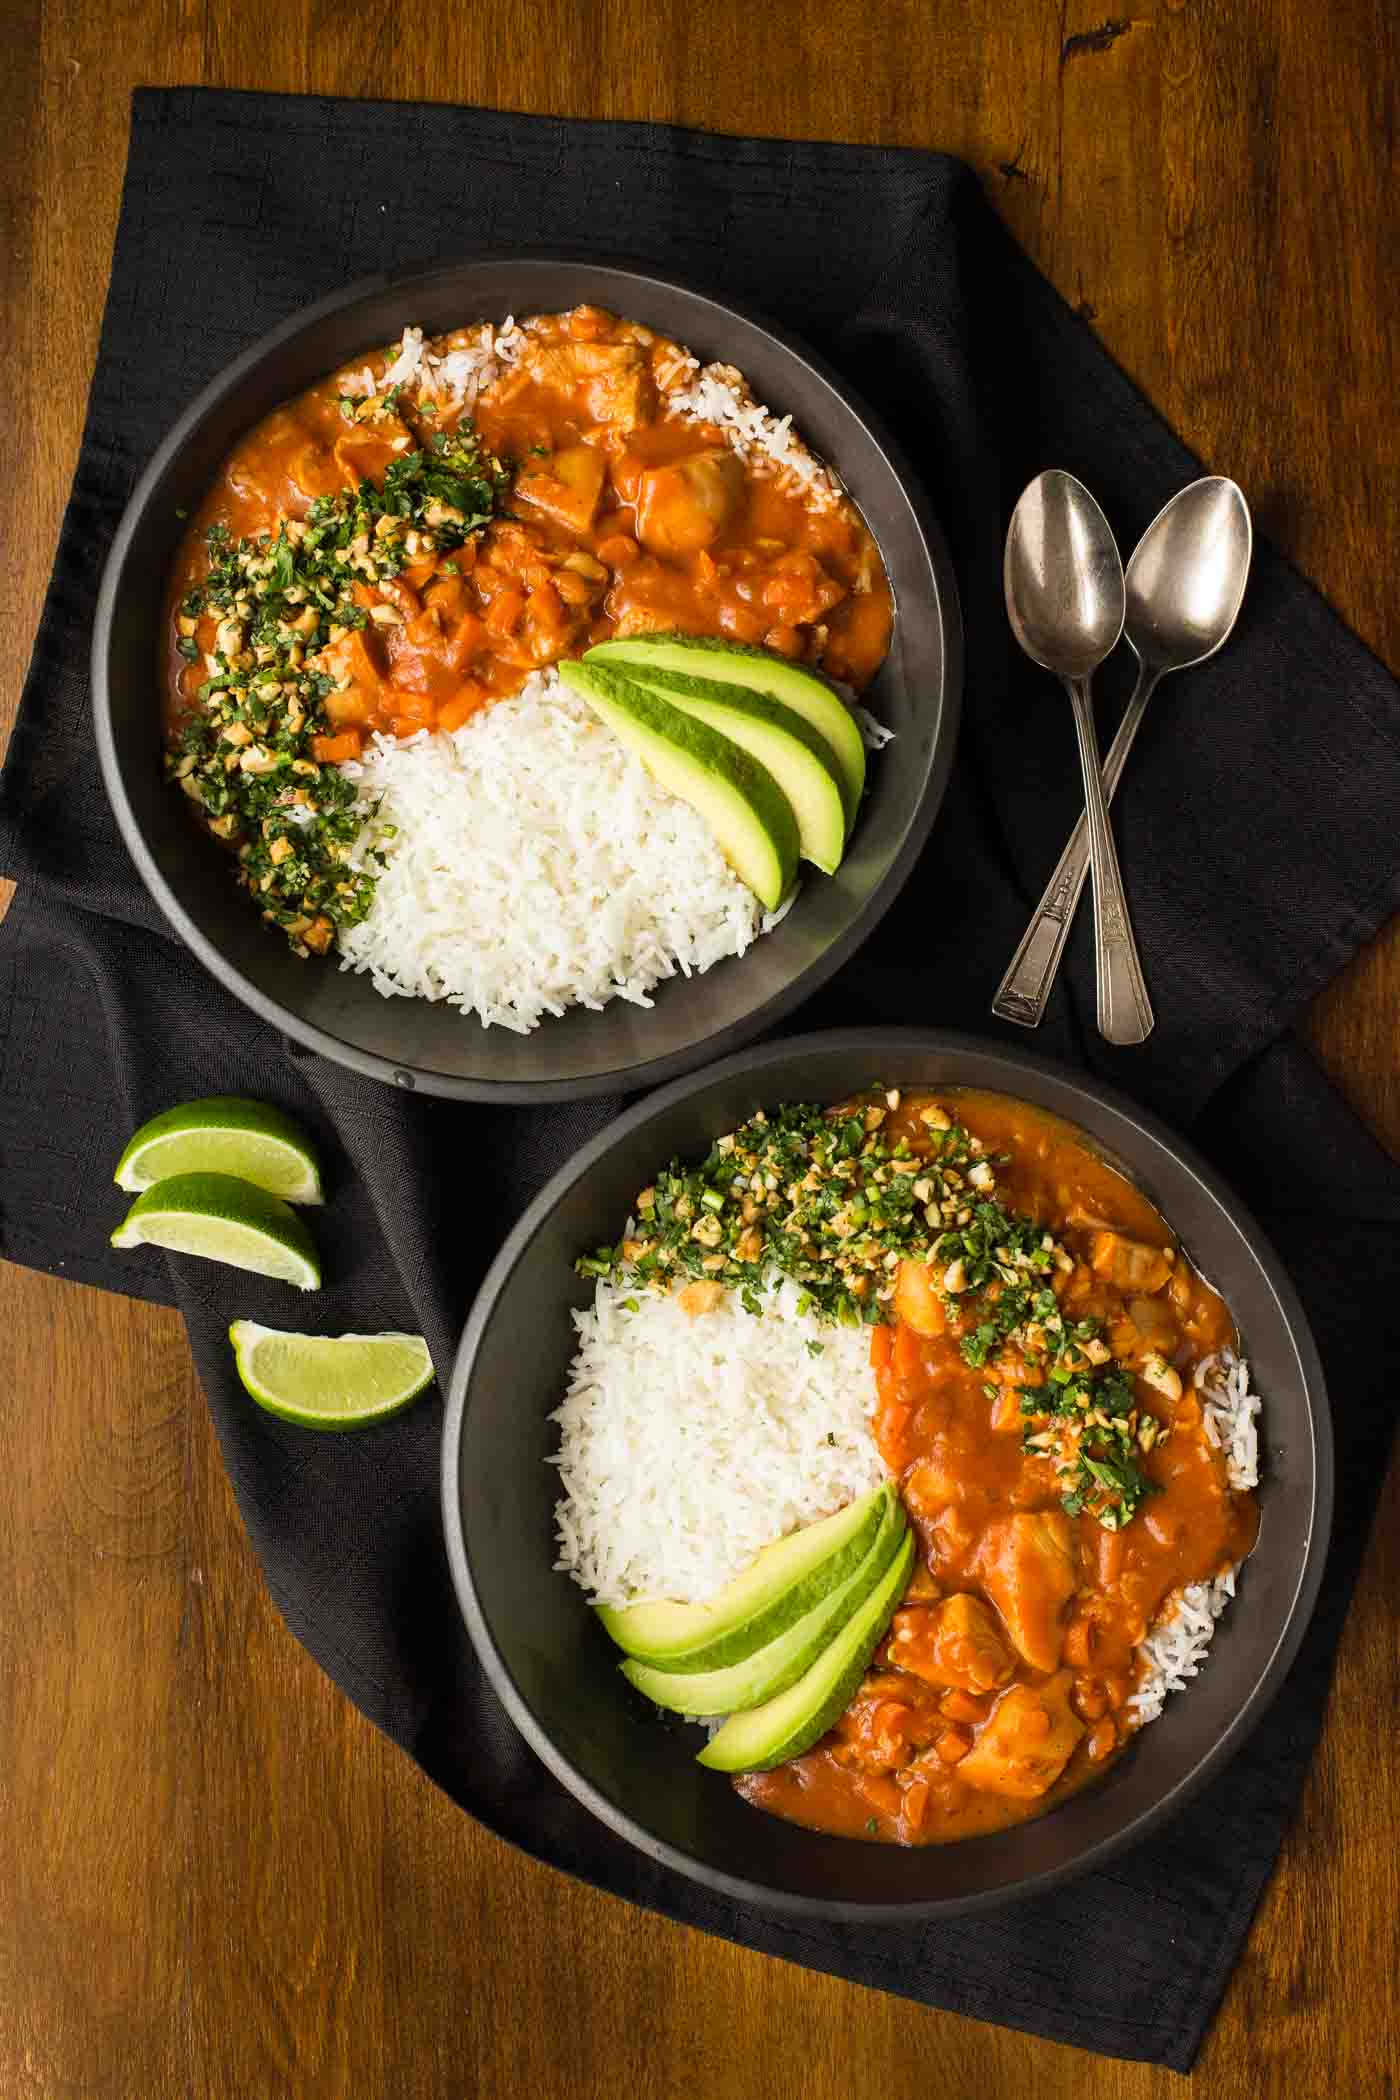 Overhead photo of two black bowls of Slow Cooker Indian Butter Chicken with rice, cilantro cashew garnish and sliced avocados.